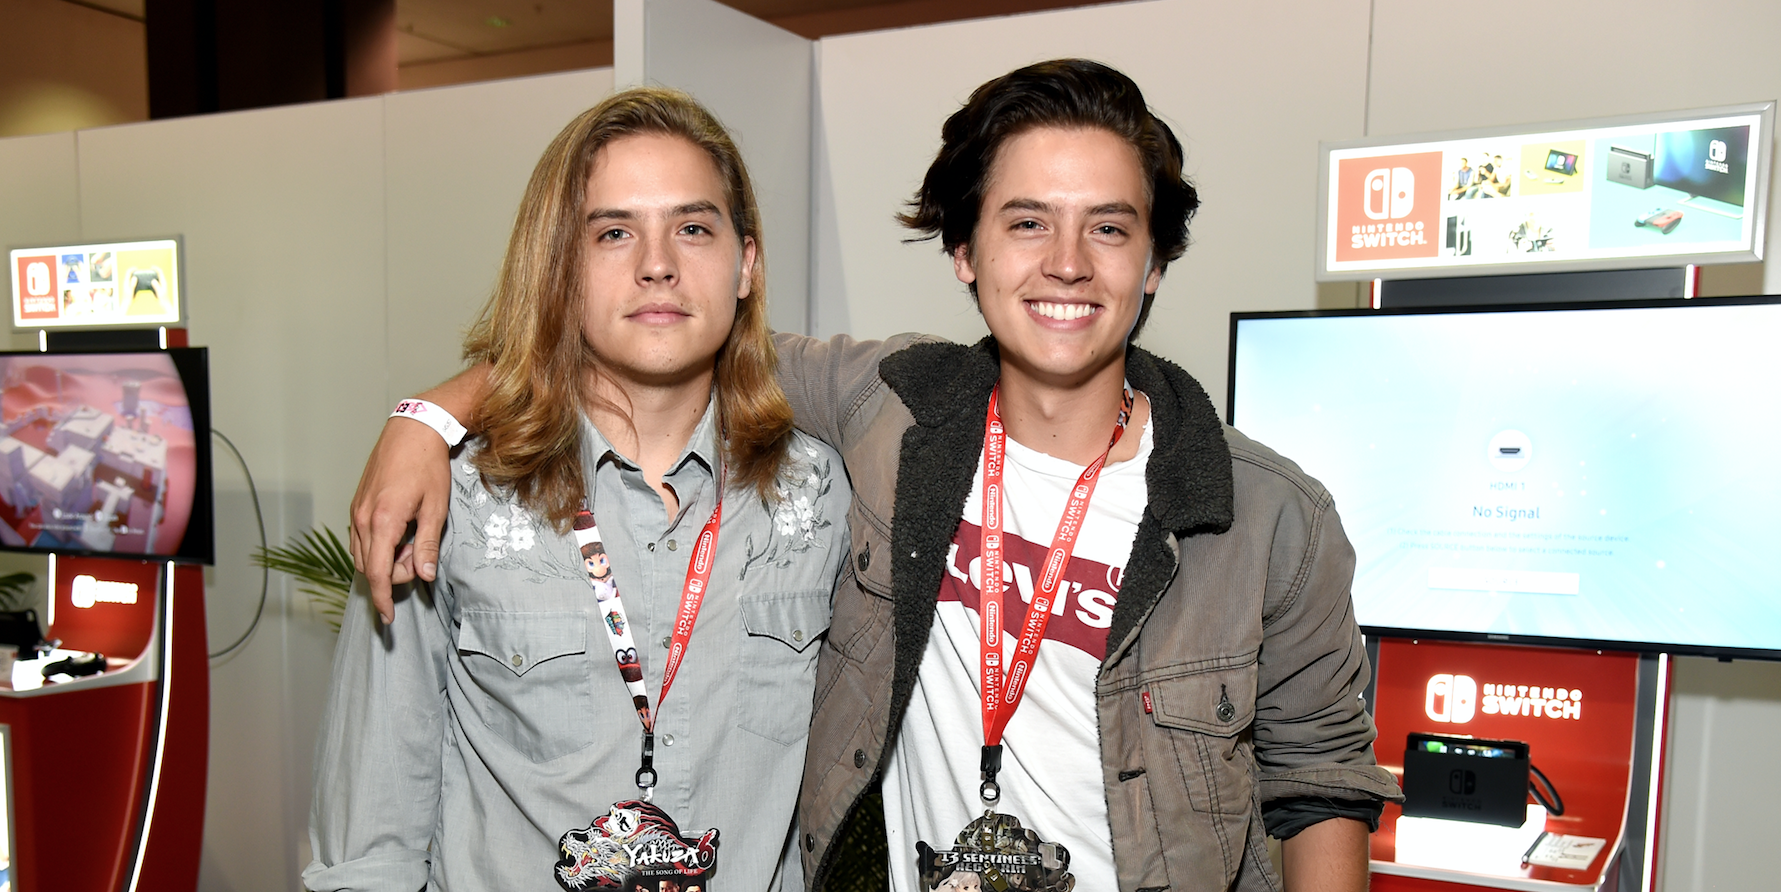 Dylan Sprouse Is Making His Big Return to Acting